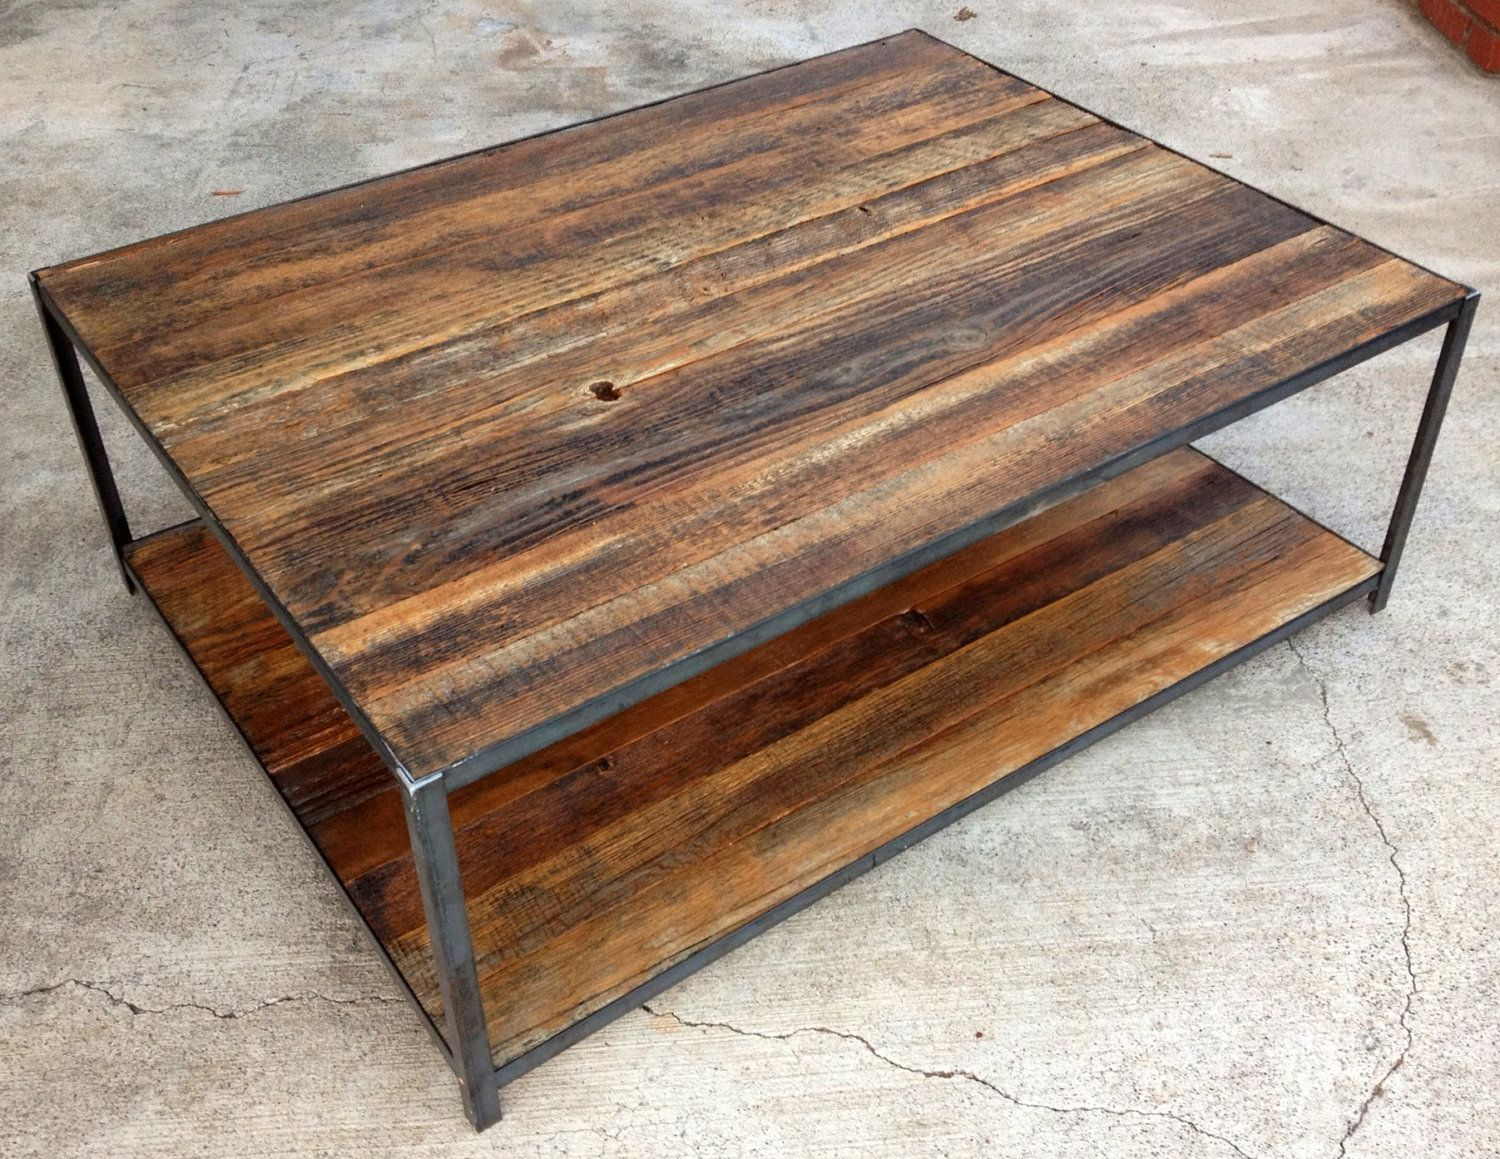 Reclaimed wood and angle iron coffee table via etsy home sweet home pinterest Recycled wood coffee table